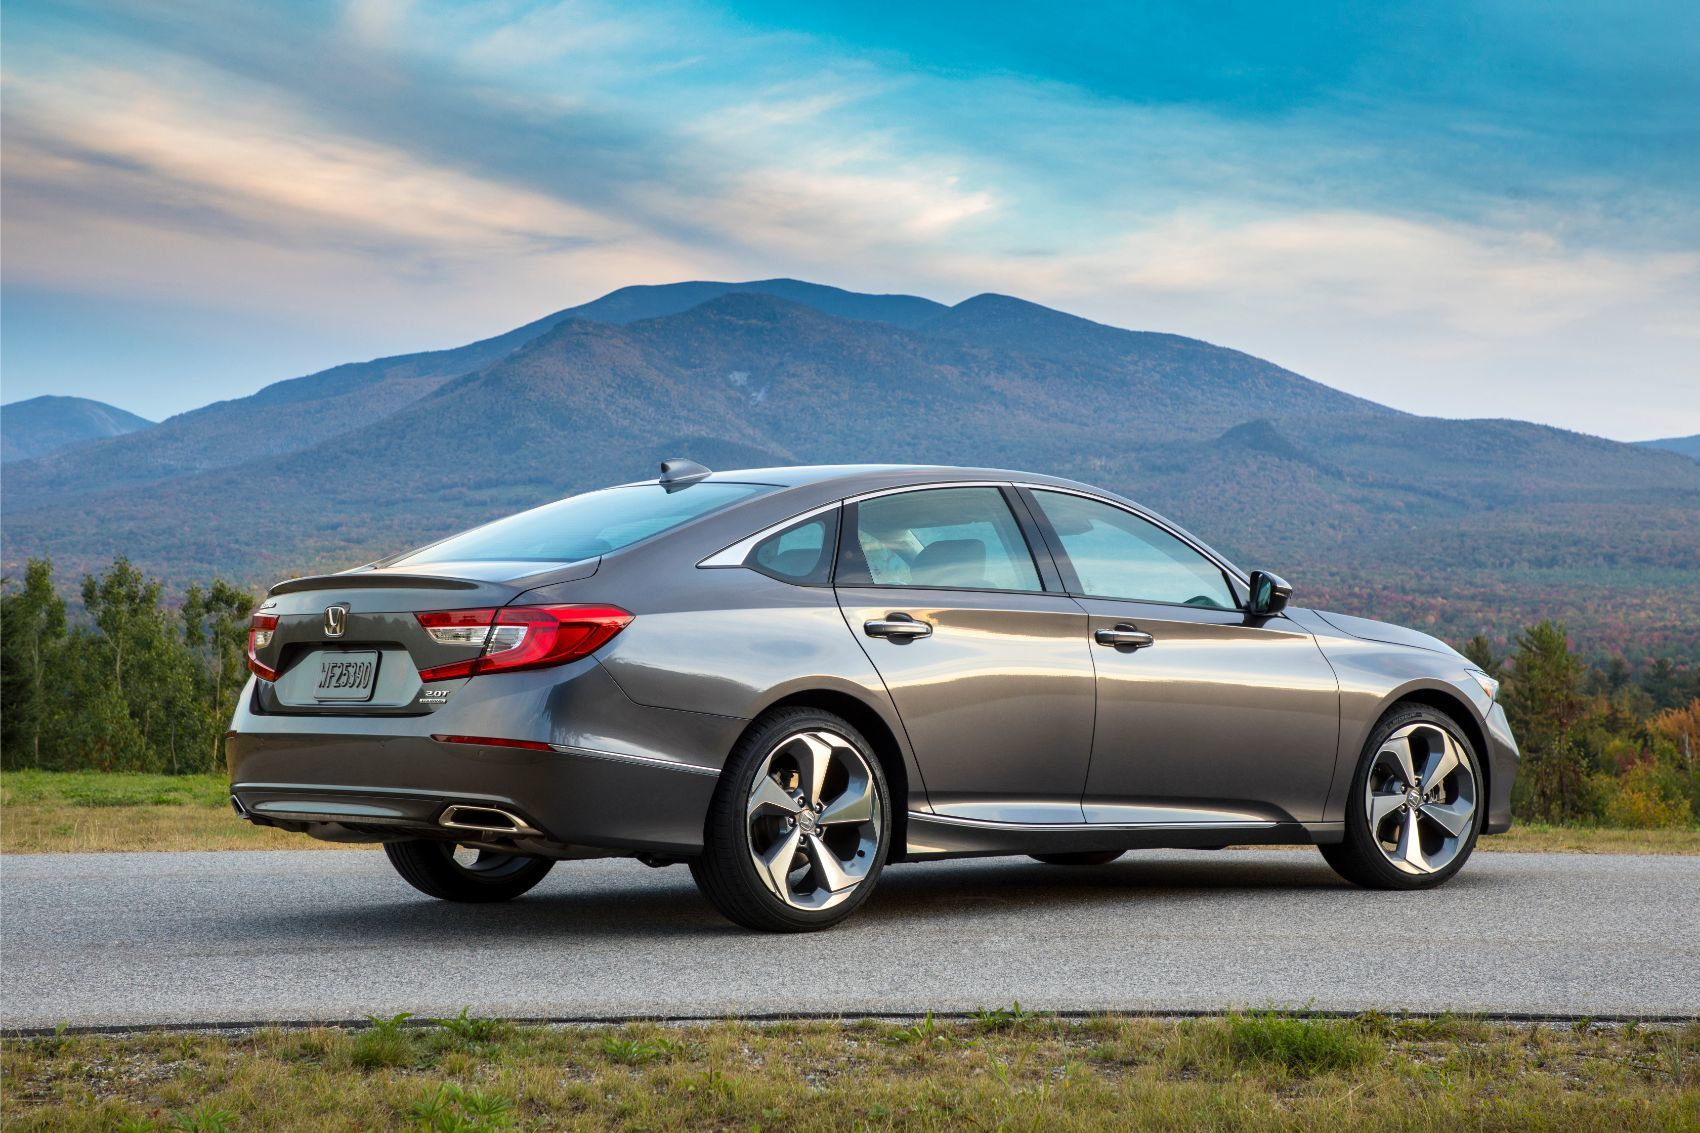 2019 Honda Accord Review: How Does The Popular Sedan Stack Up?